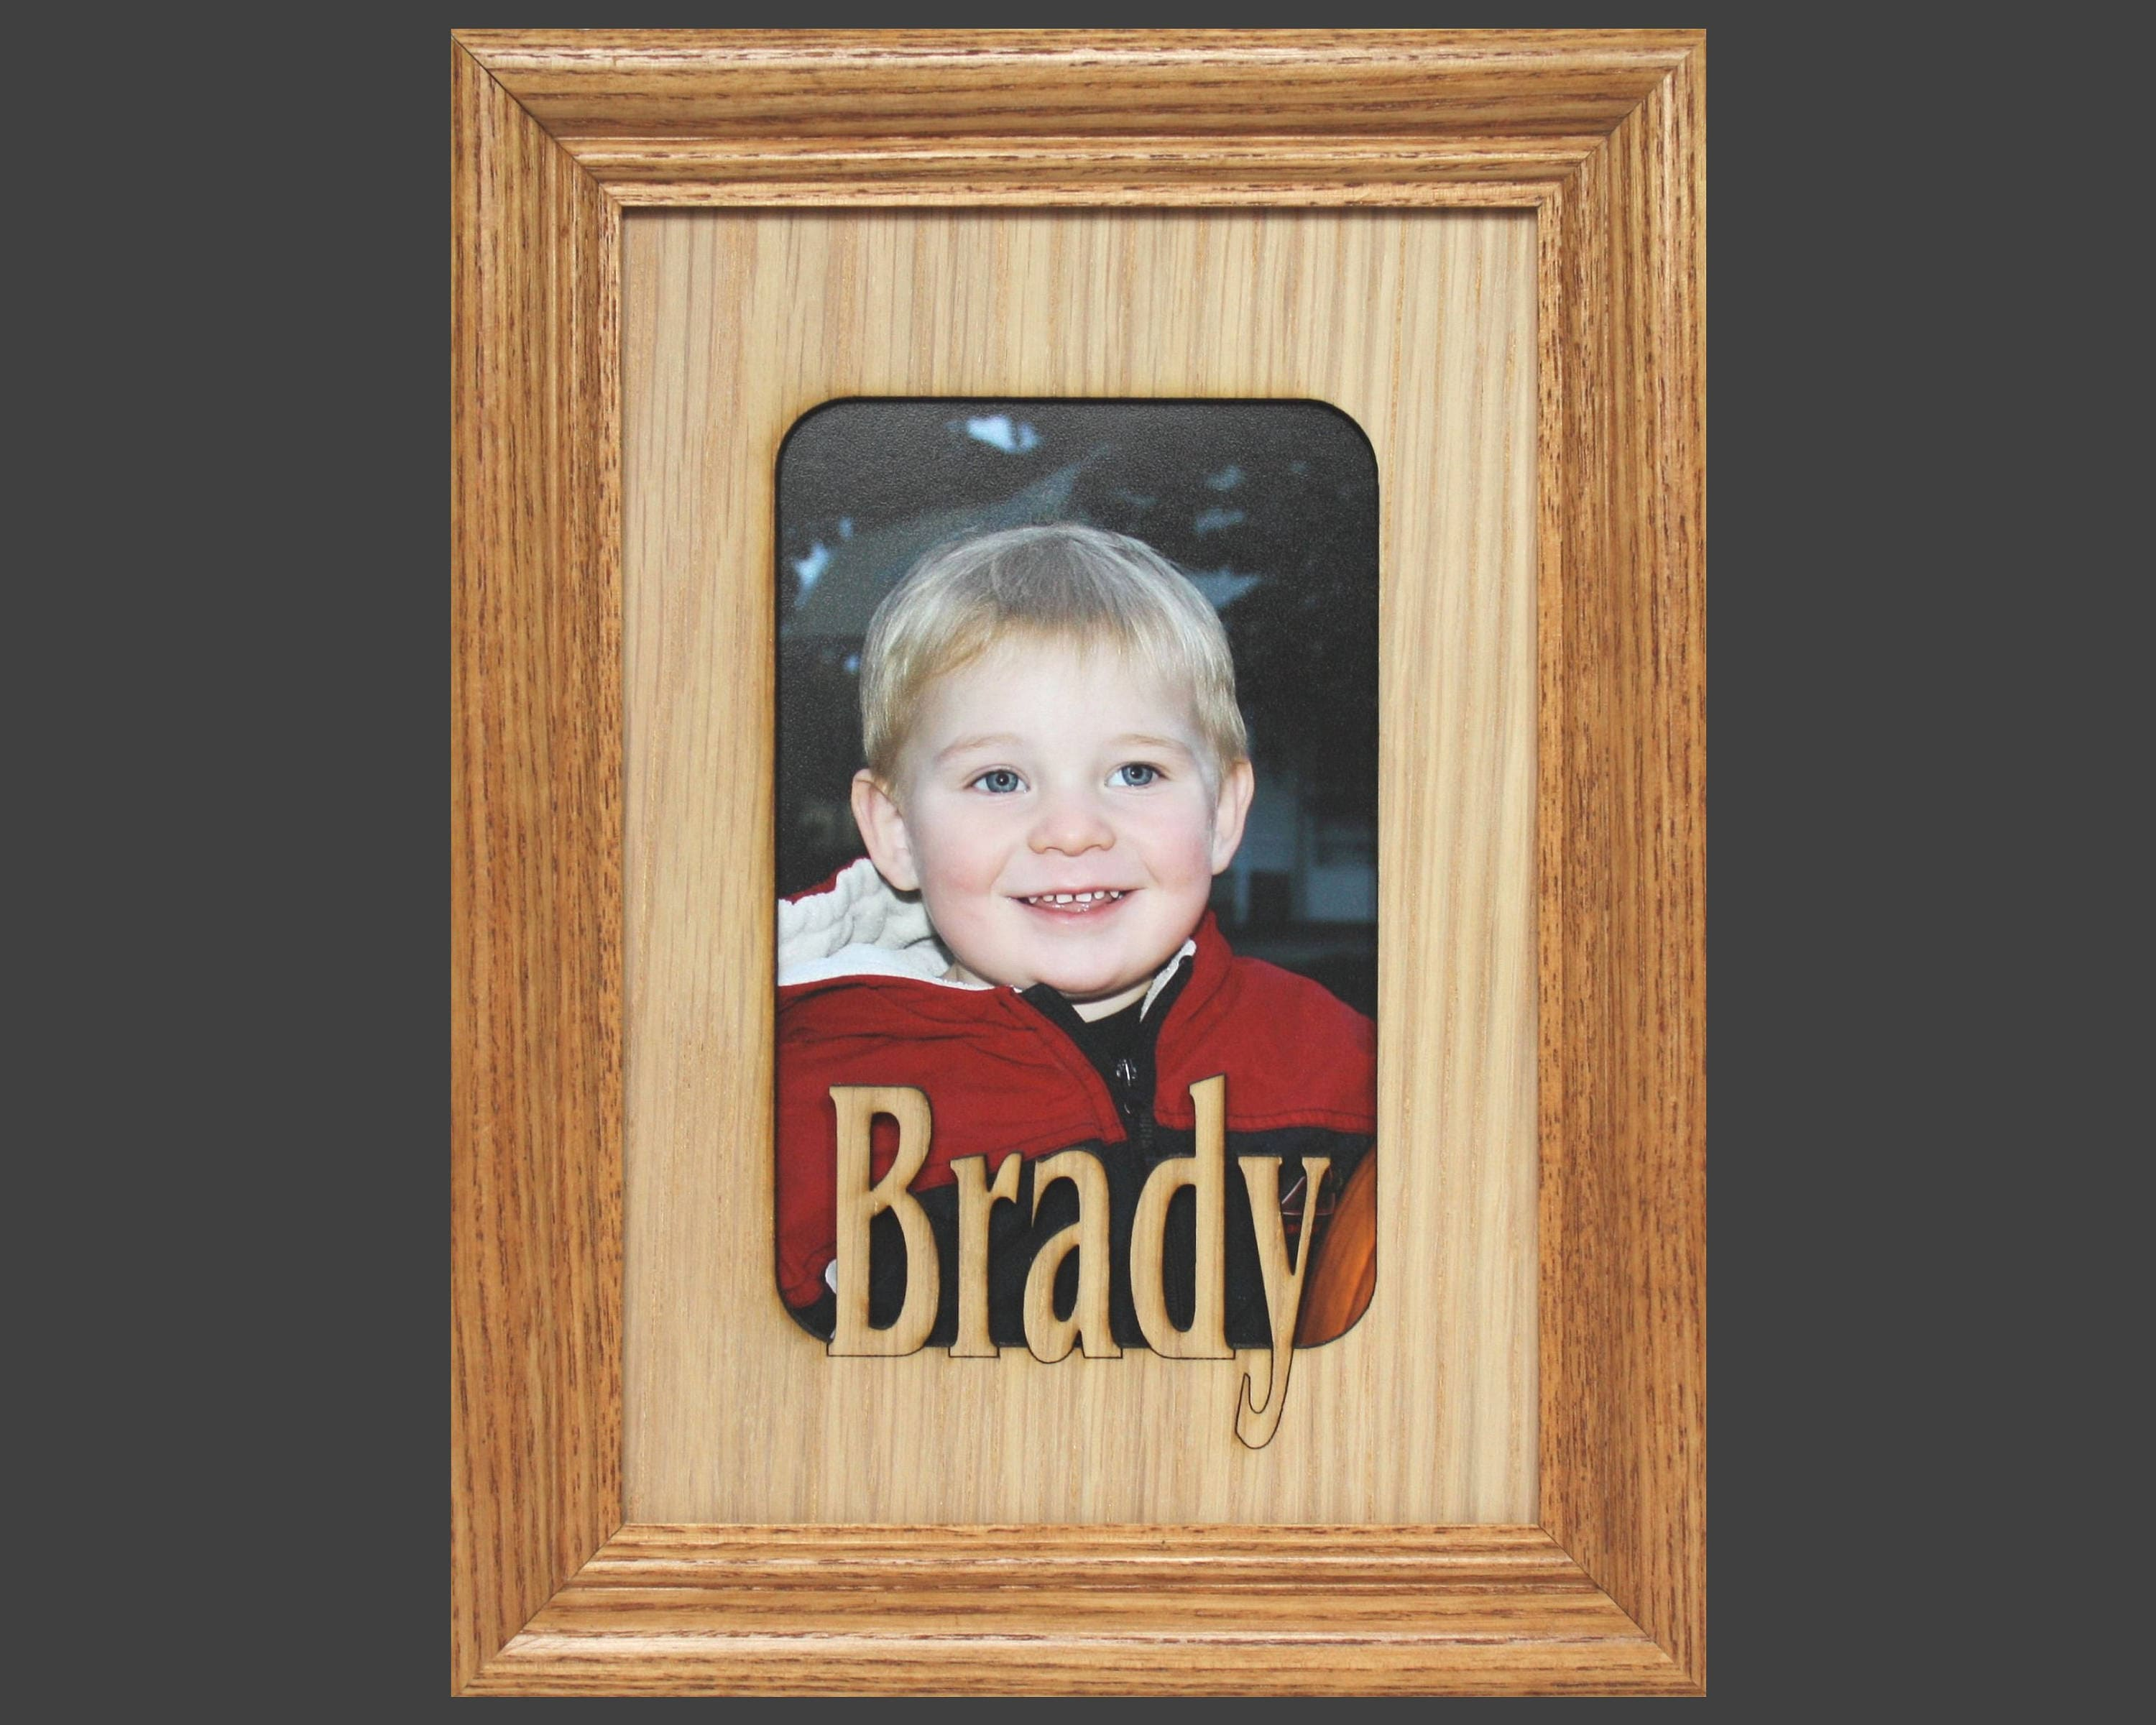 5x7 name frame personalized picture frame mat insert for 5x7 request a custom order and have something made just for you jeuxipadfo Images